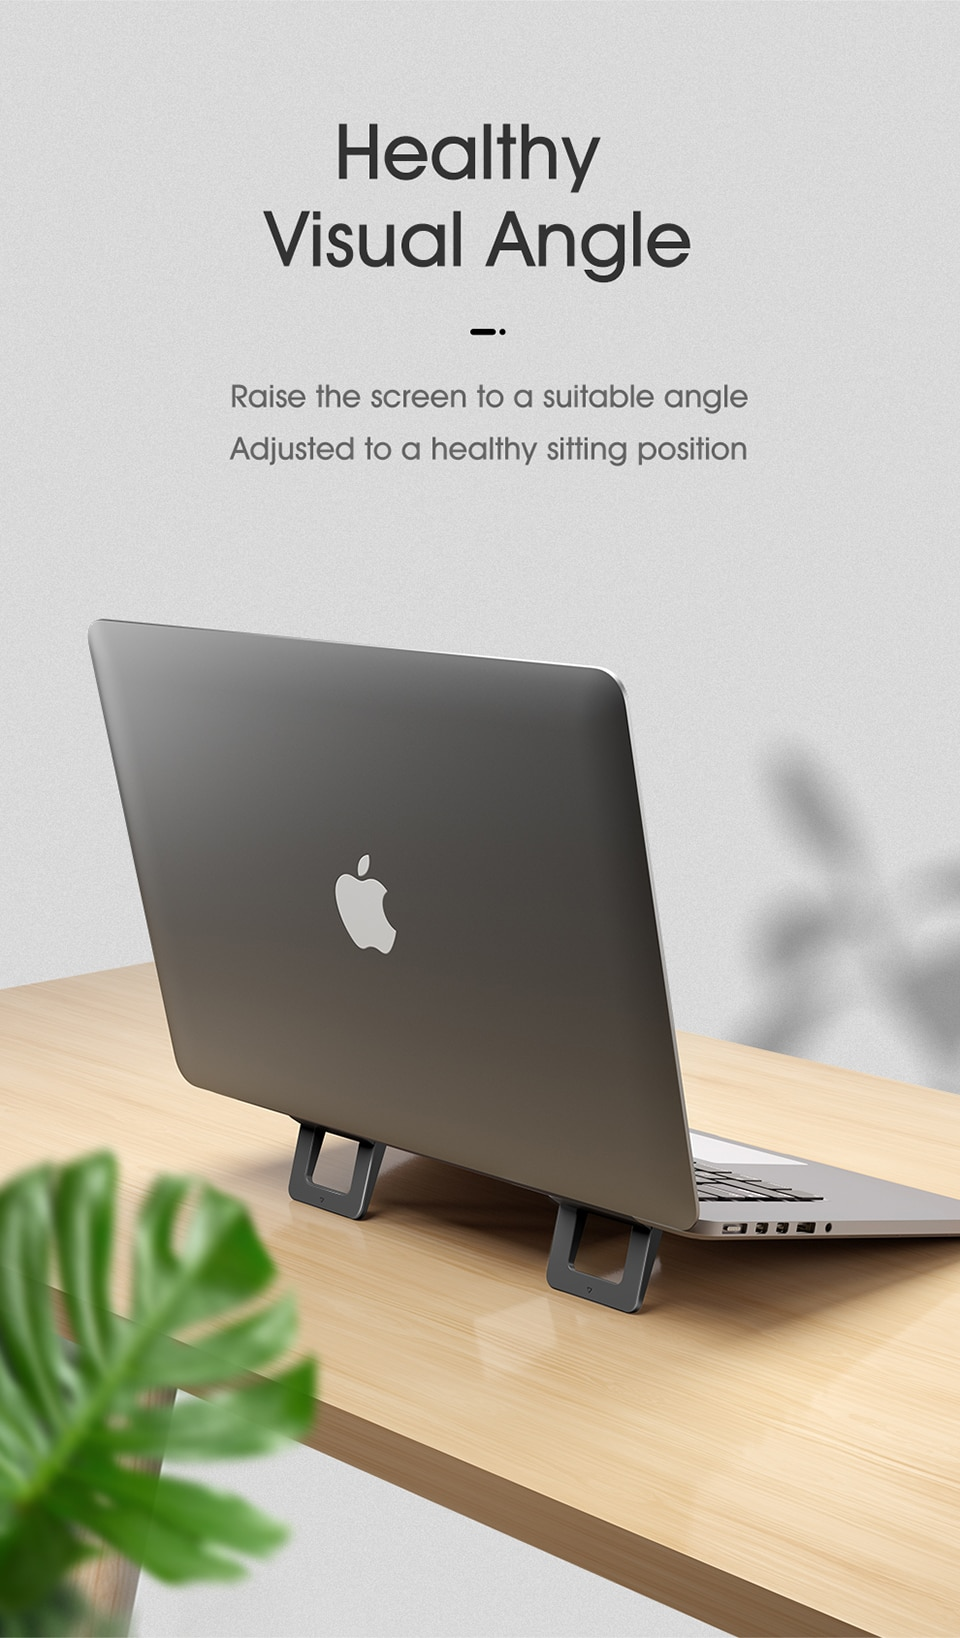 LINGCHEN Laptop Stand for MacBook Pro Universal Desktop Laptop Holder Mini Portable Cooling Pad Notebook Stand for Macbook Air